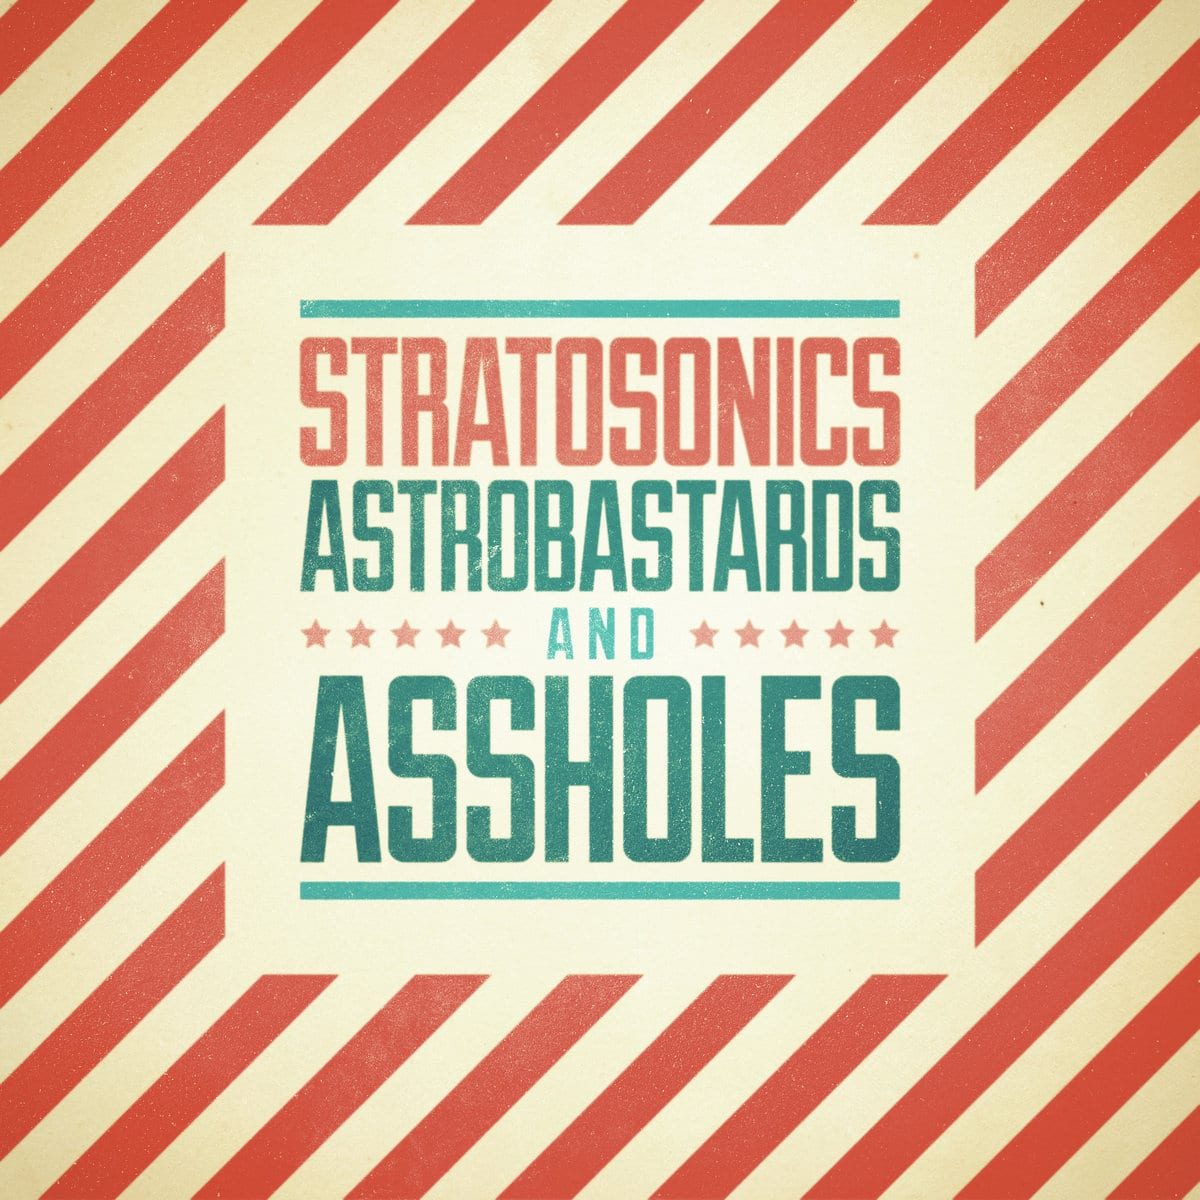 Astrobastards and Assholes